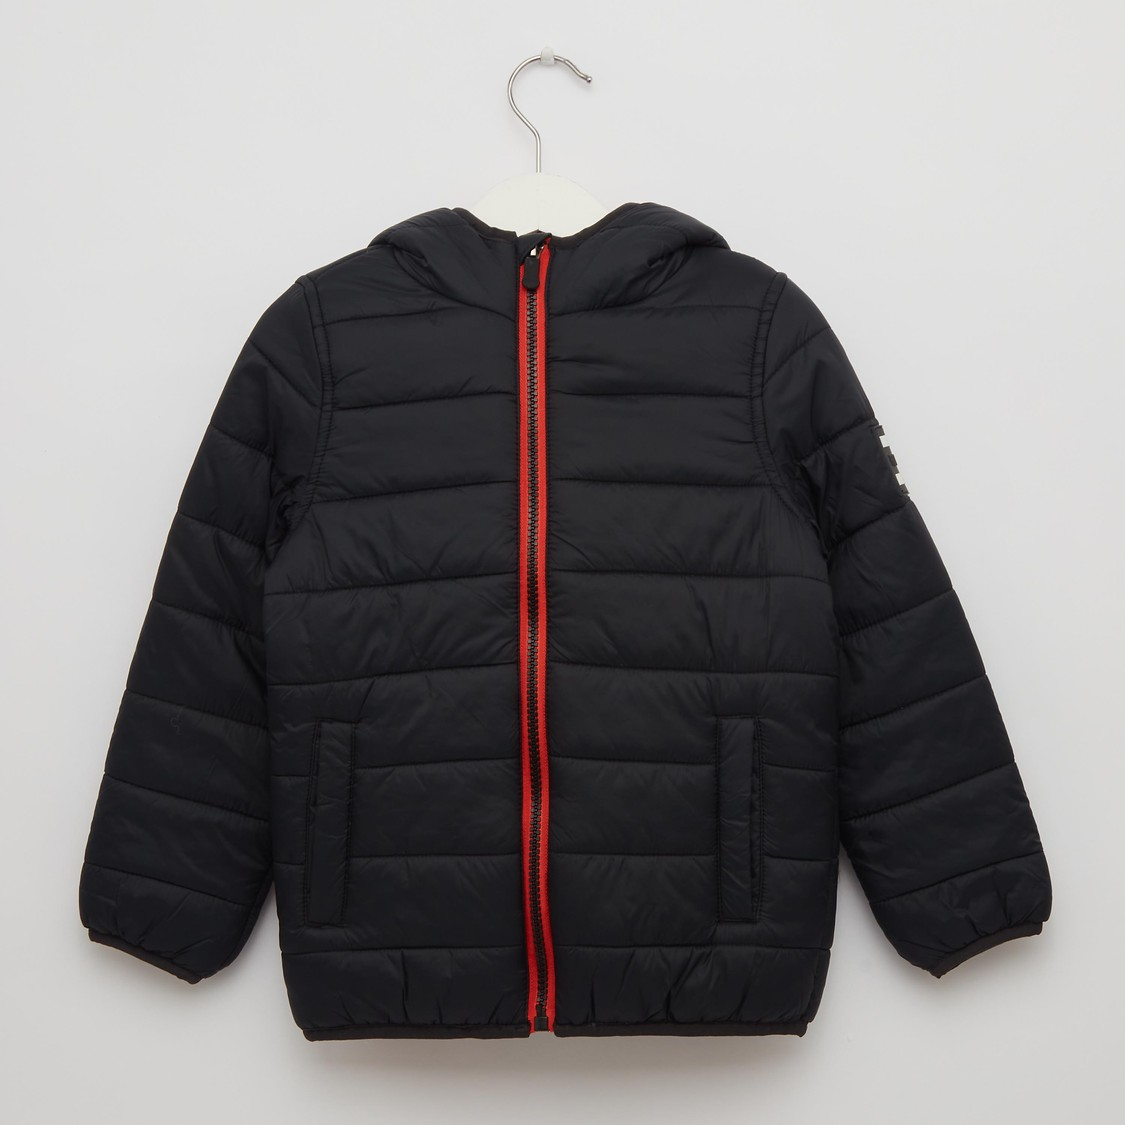 Solid Zip Front Puffer Jacket with Long Sleeves and Hood